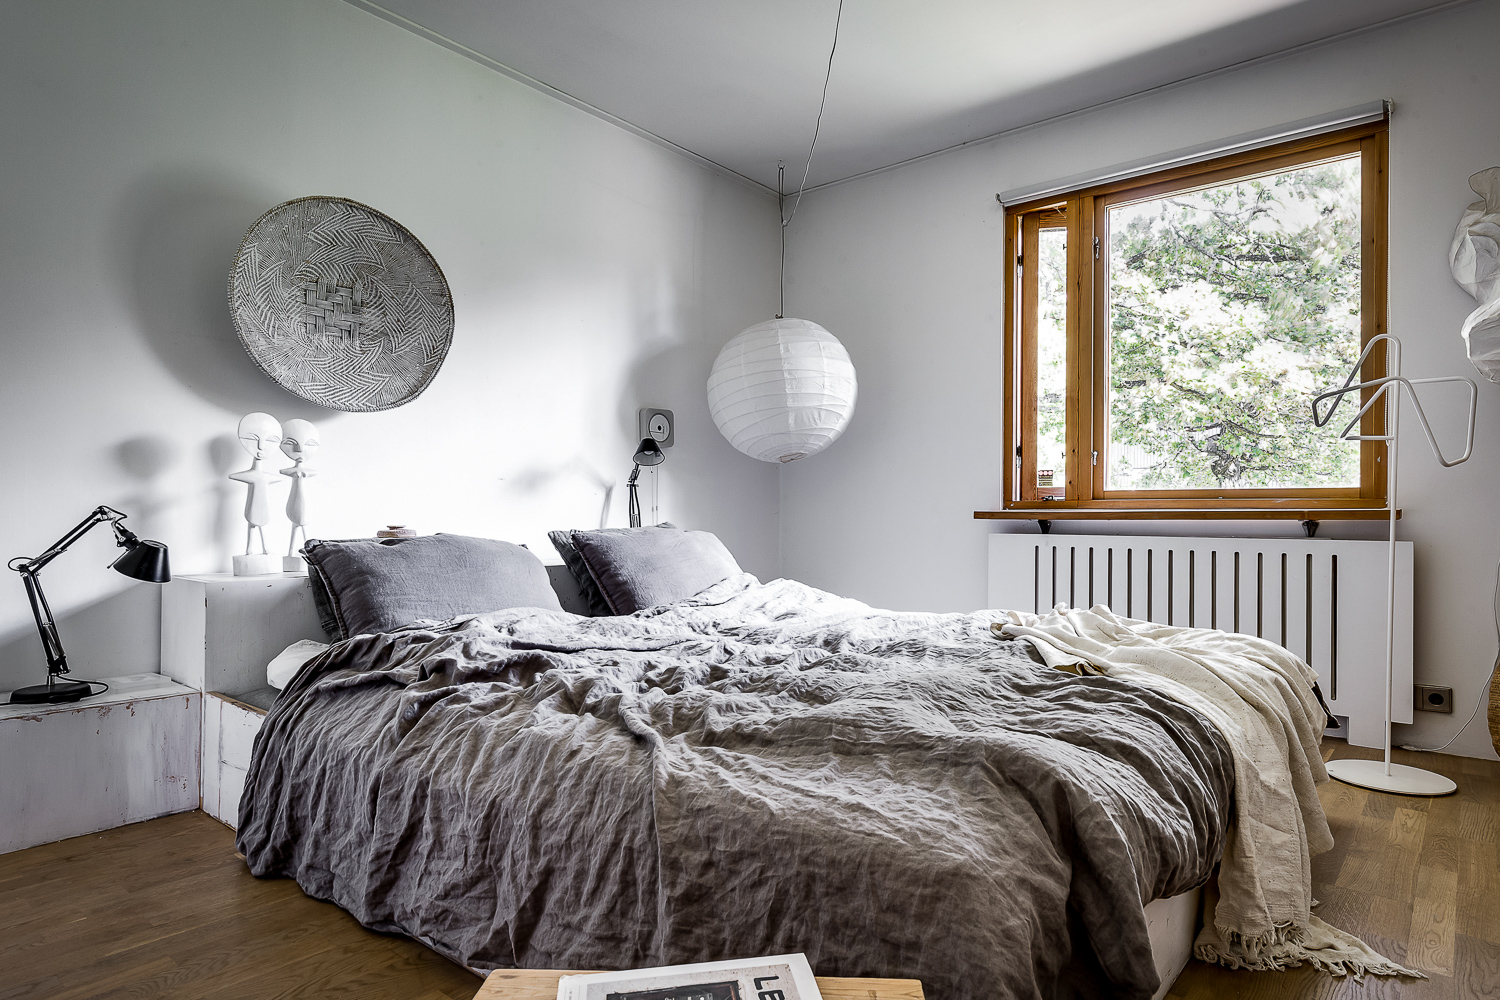 Scandinavian design villa with oriental and minimalist elements, bedroom  decor